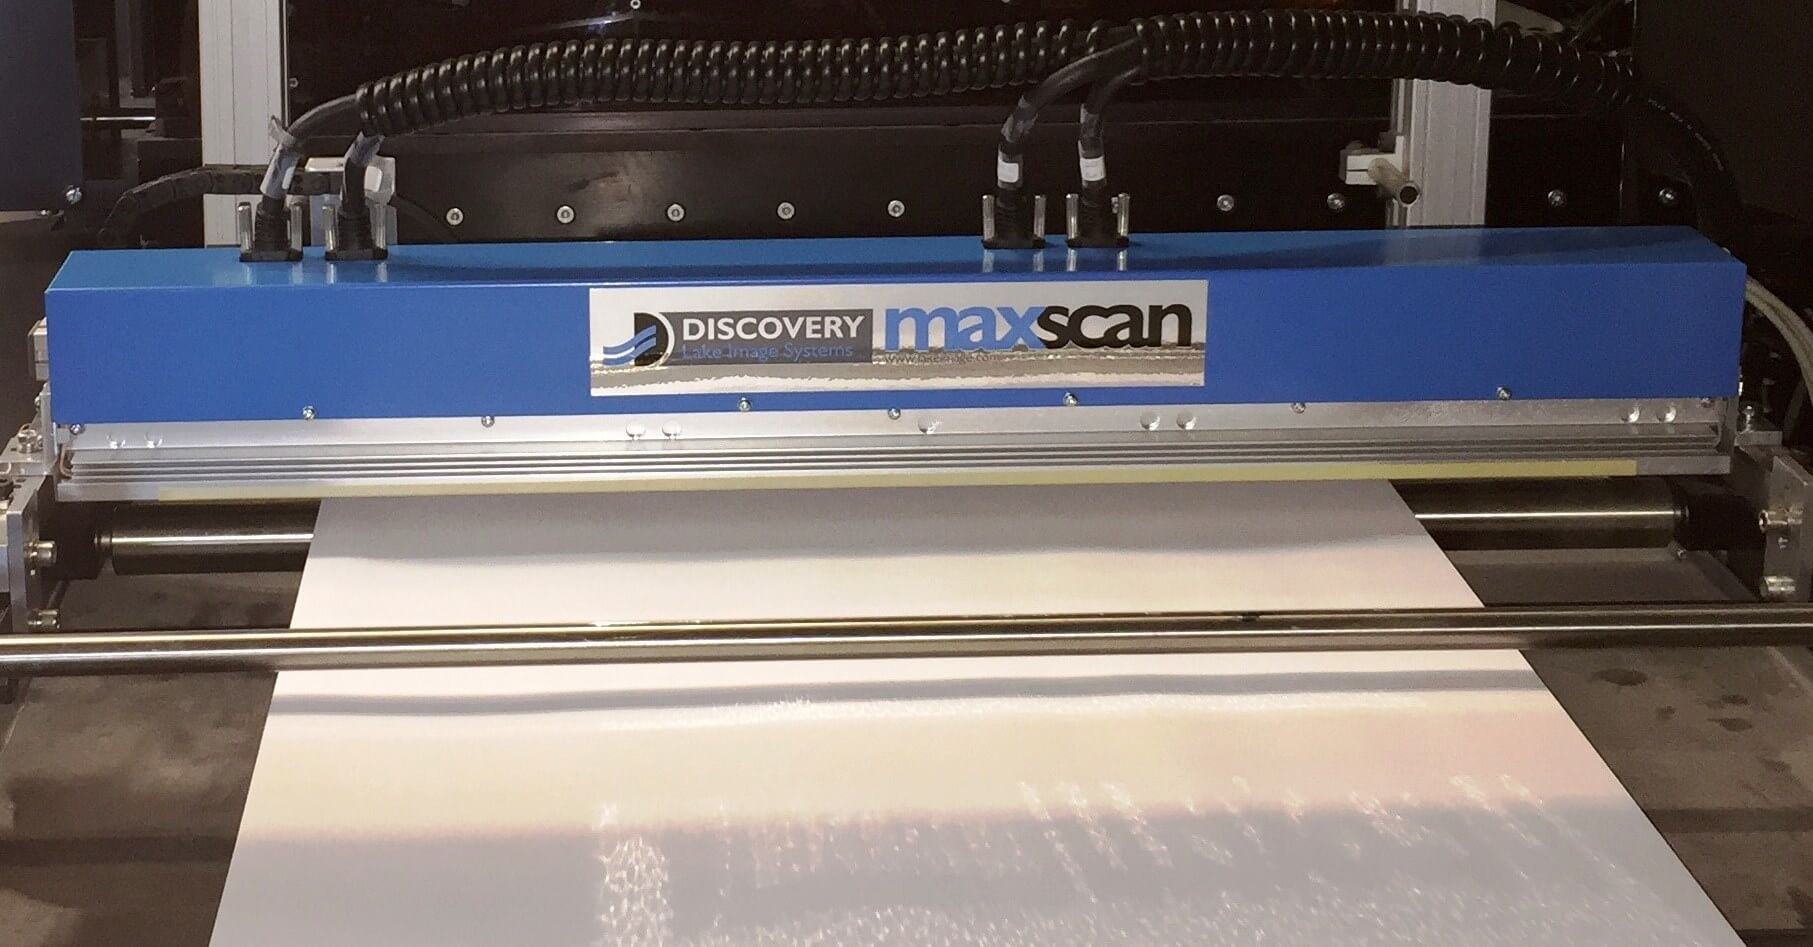 Discovery MaxScan